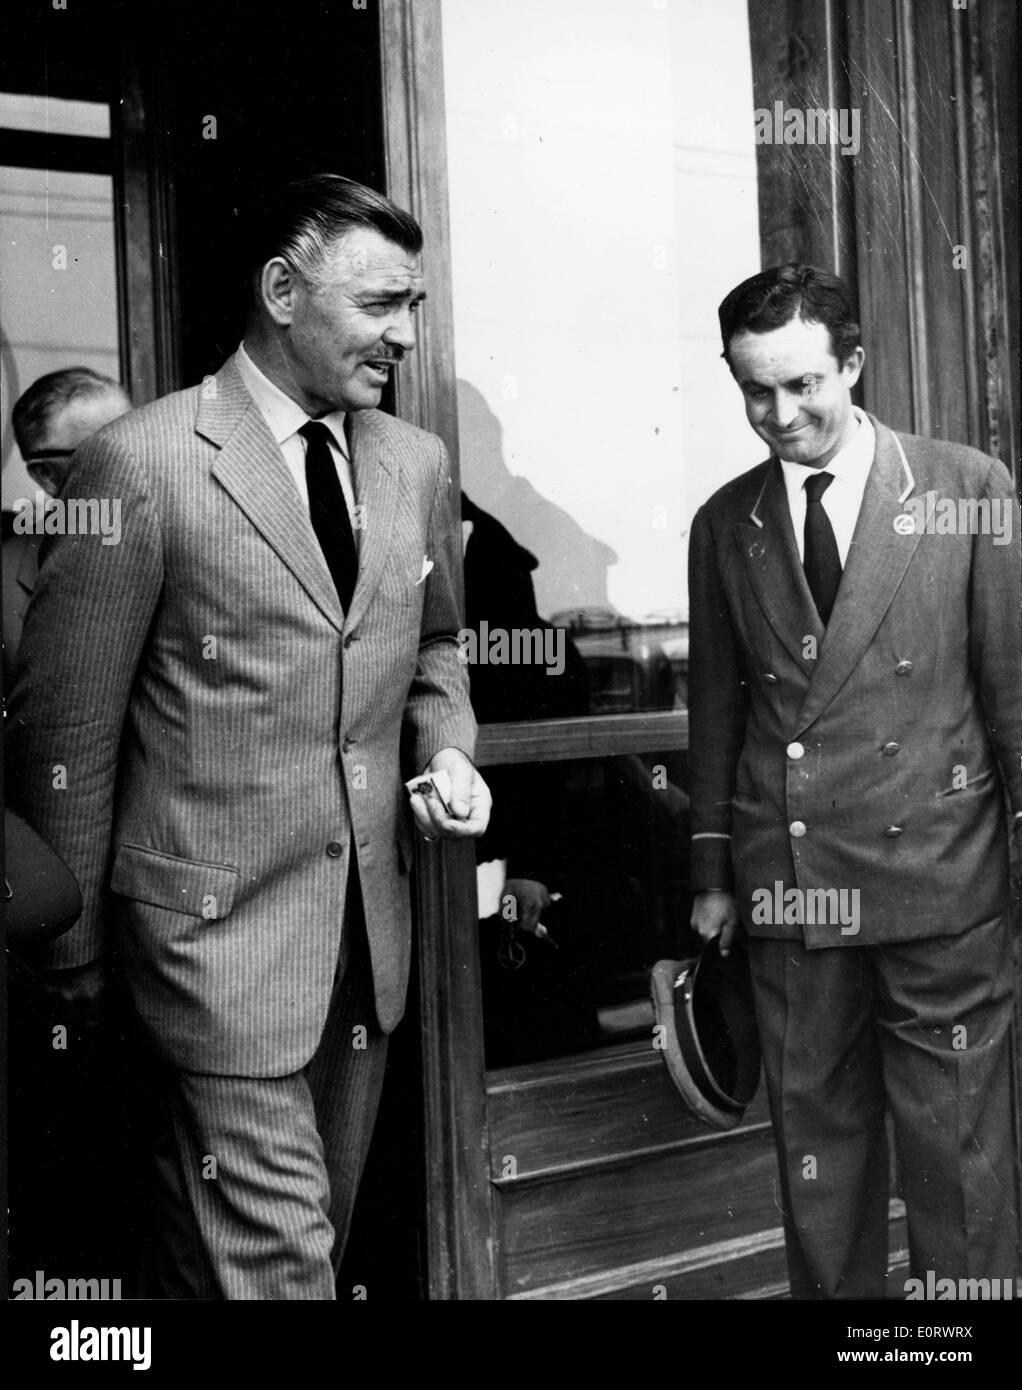 Actor Clark Gable talks with the doorman as he leaves - Stock Image